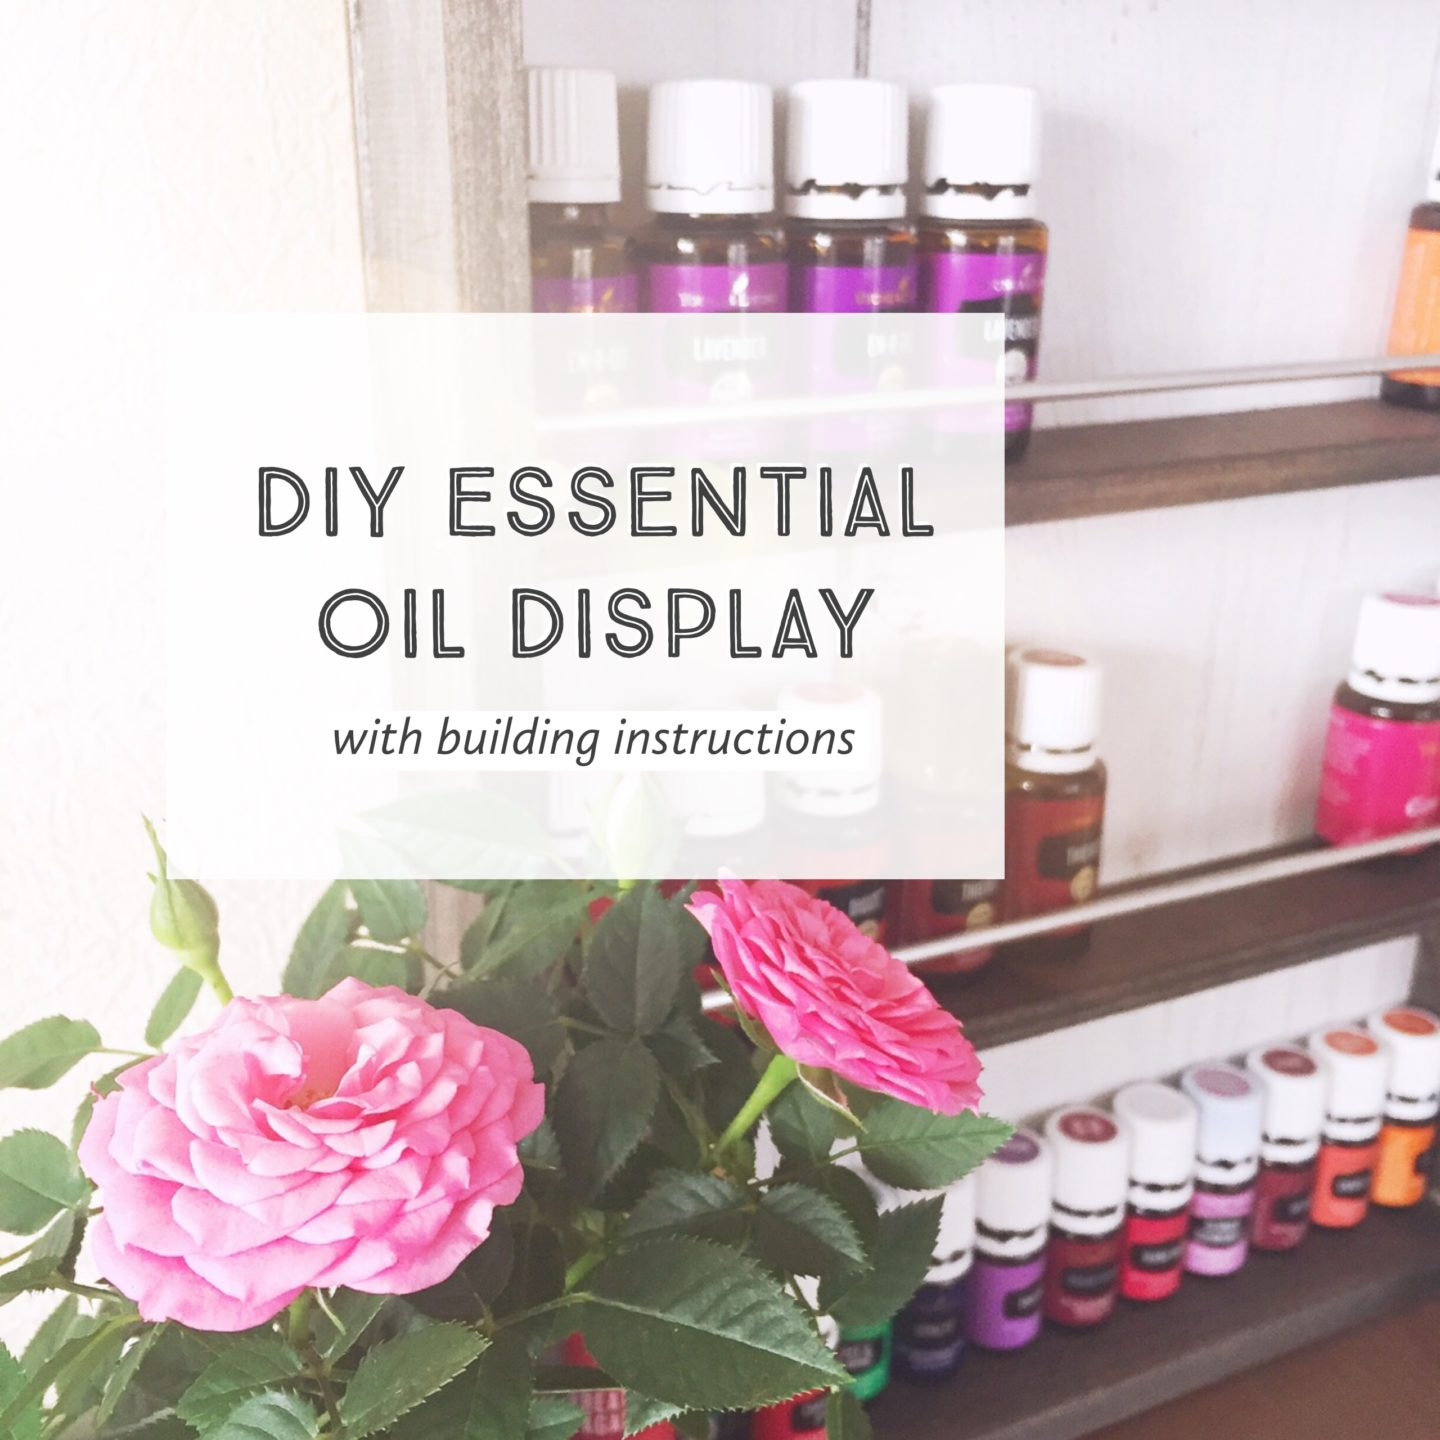 DIY Essential Oil Display